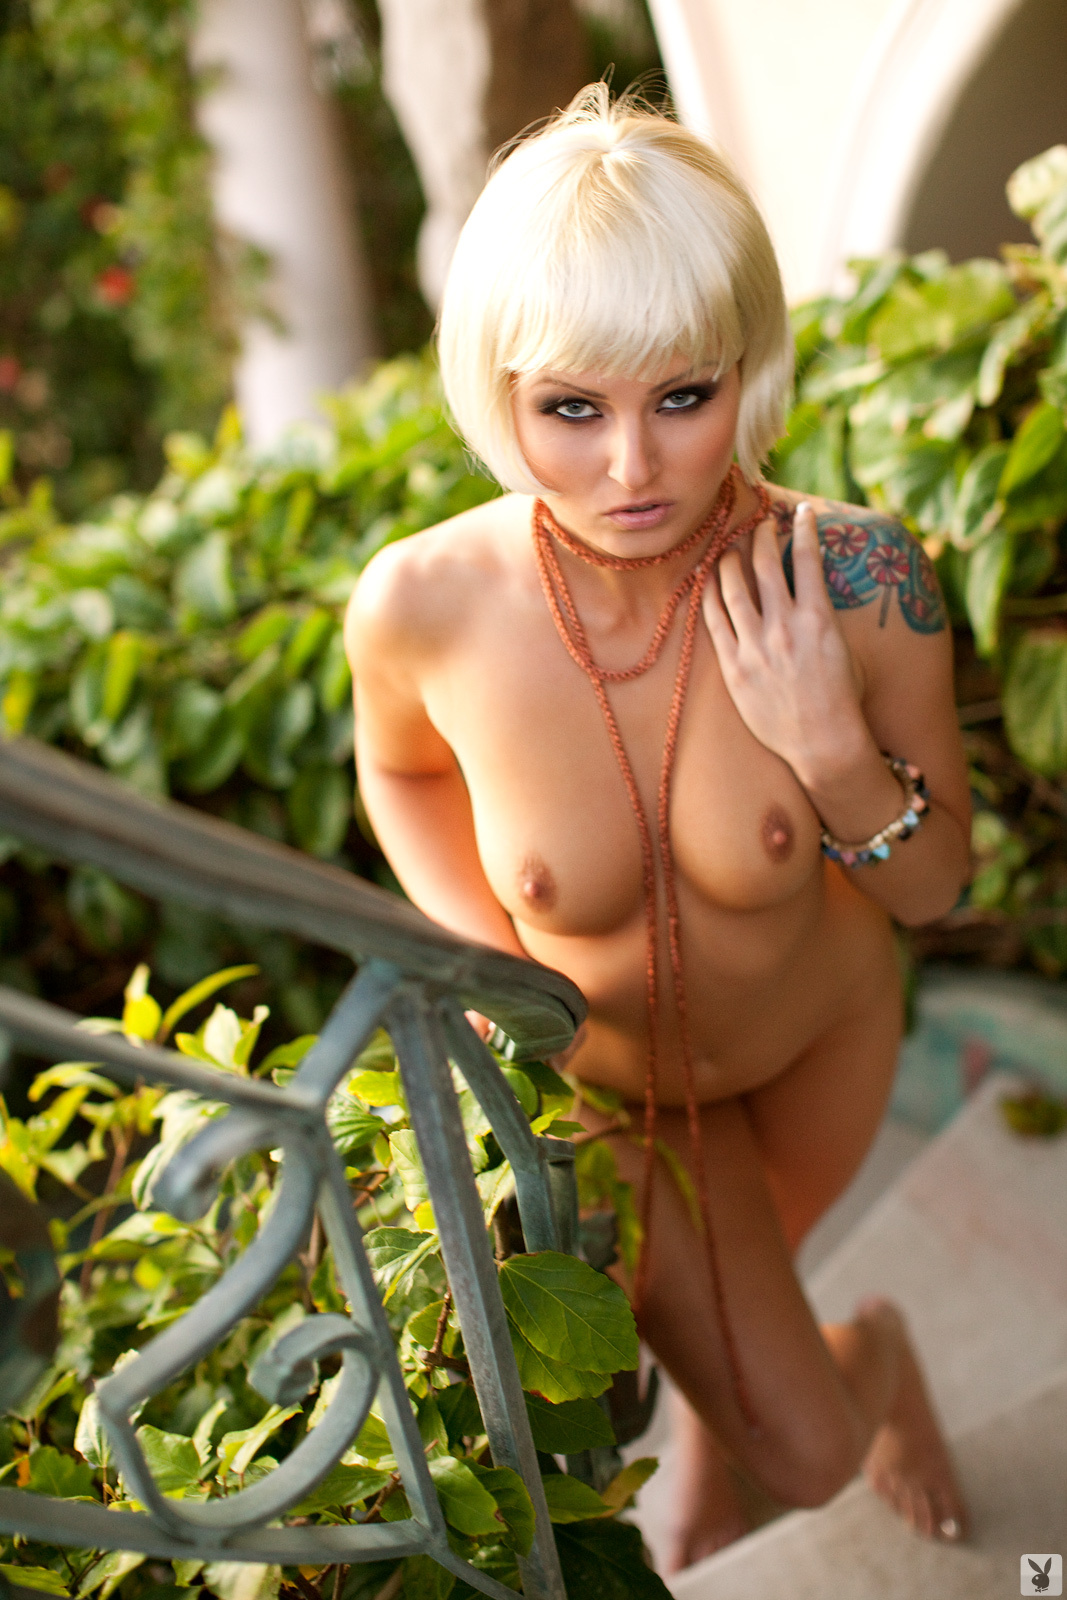 veronica-lavery-blonde-naked-playboy-20